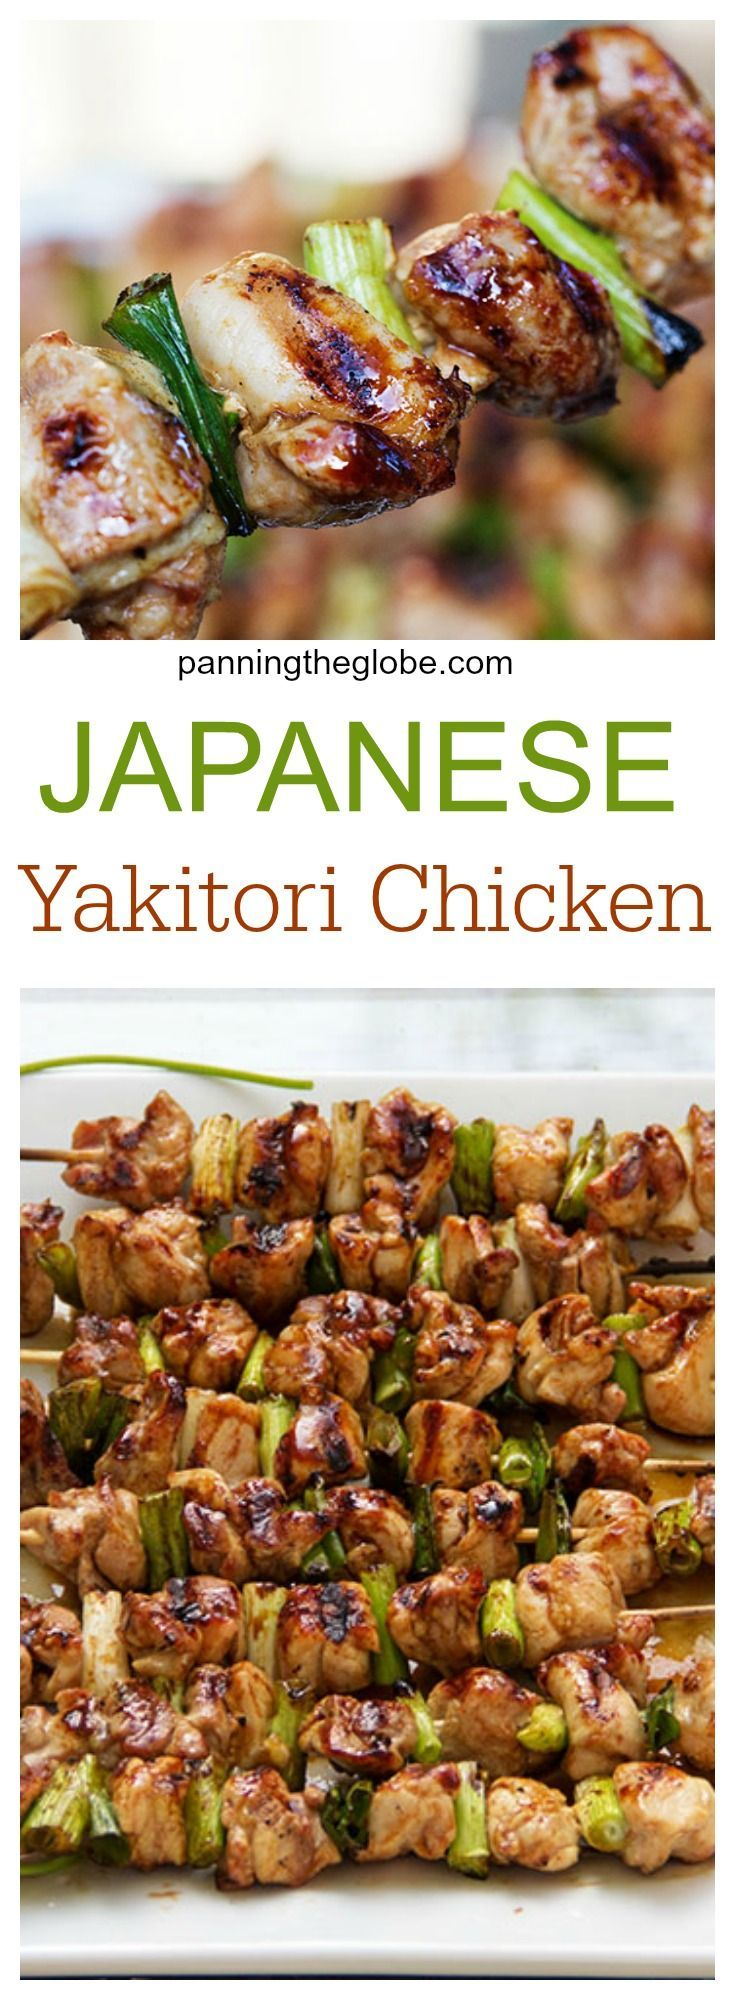 438 best japanese food and recipes images on pinterest asian an easy home cooking recipe for the popular japanese chicken and scallion kebabs chicken yakitori forumfinder Image collections